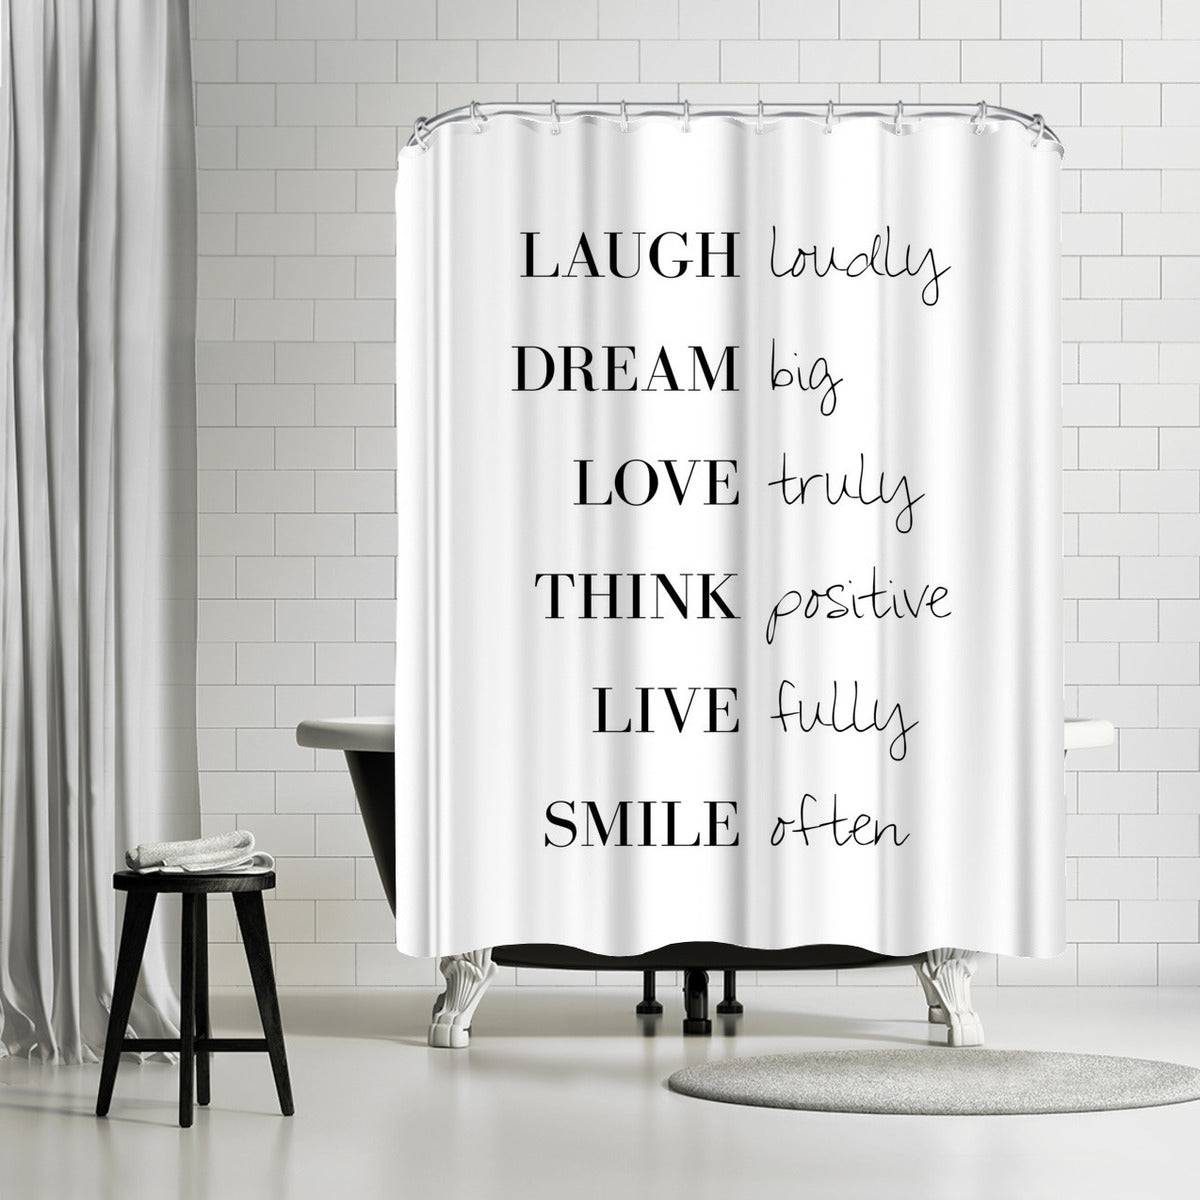 To Do List by Explicit Design Shower Curtain - Shower Curtain - Americanflat